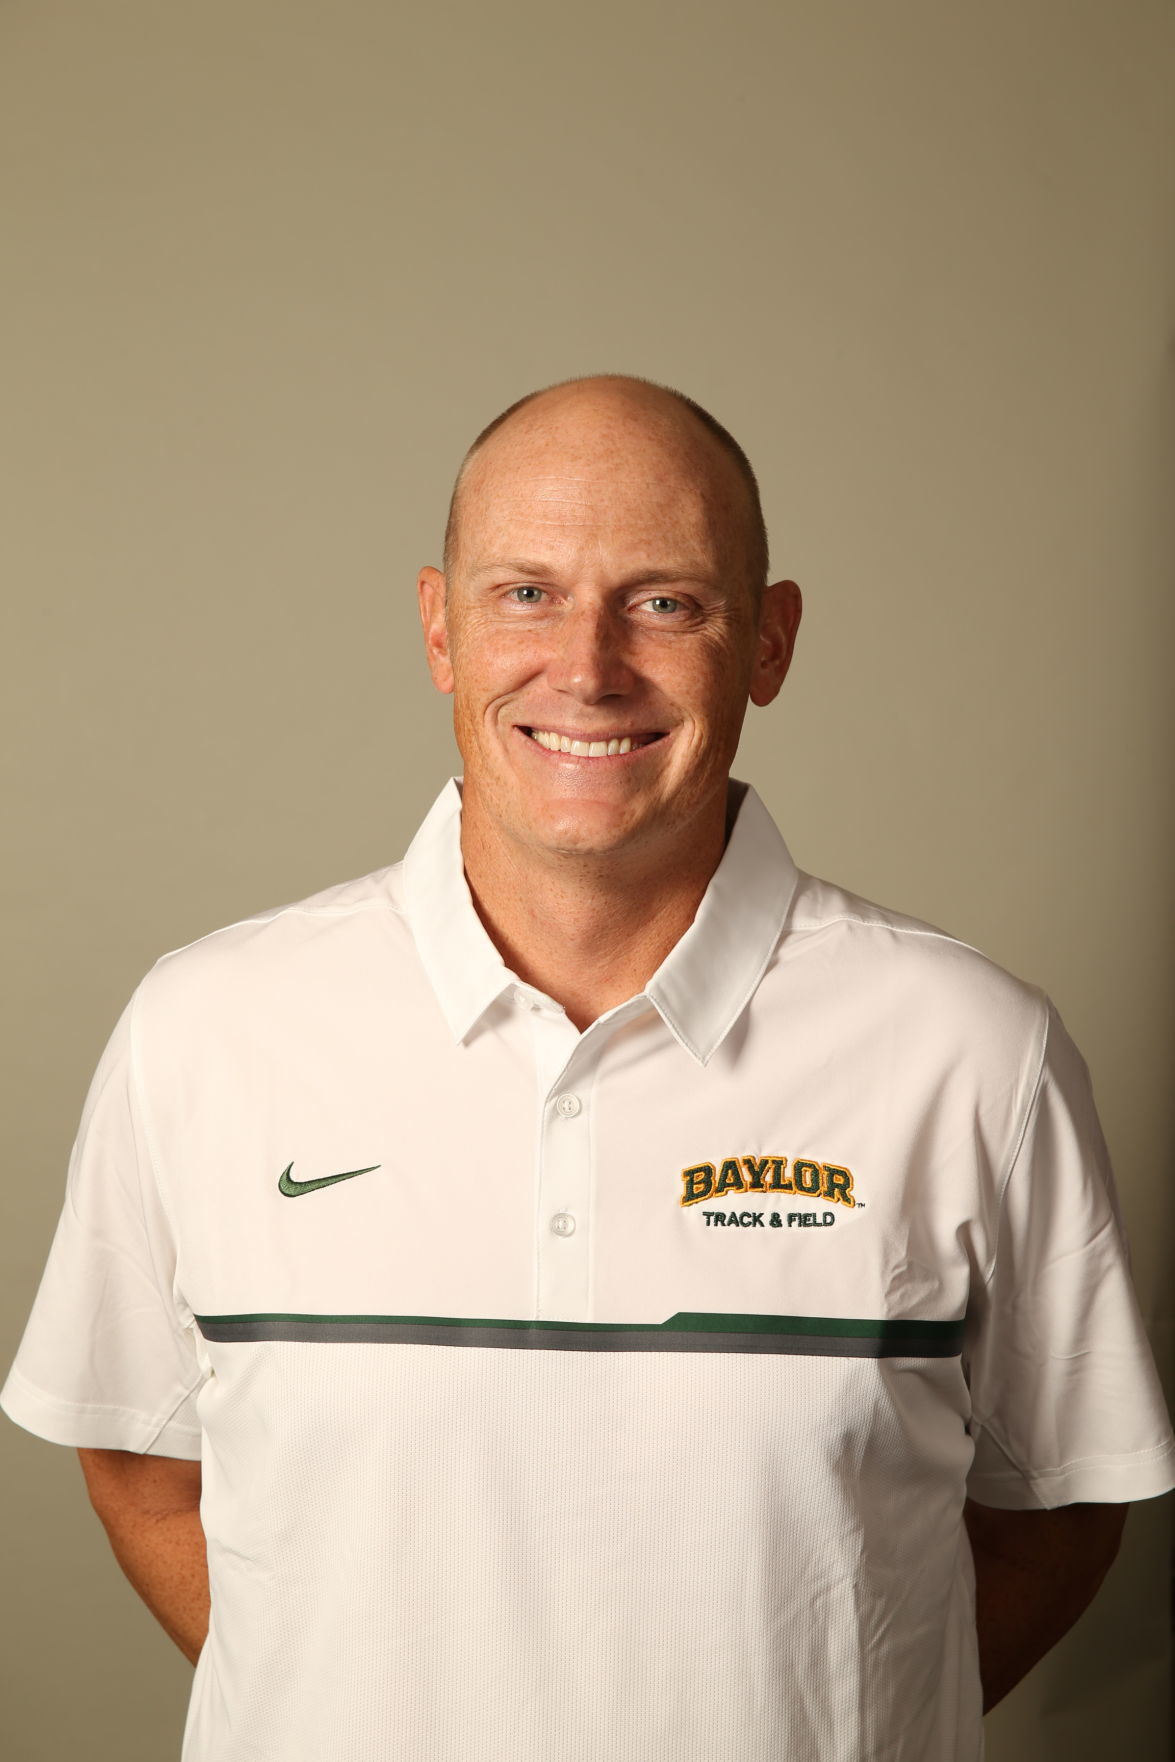 Baylor's Capron takes on associate head coach title ...